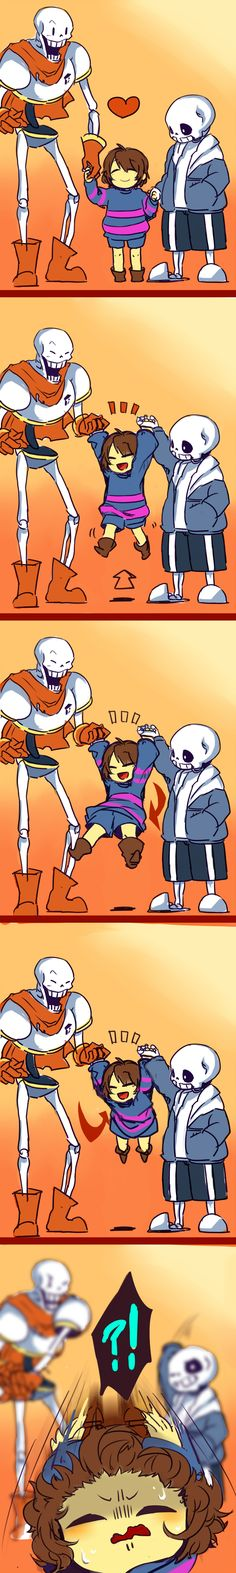 Papyrus, Frisk, and Sans - comic